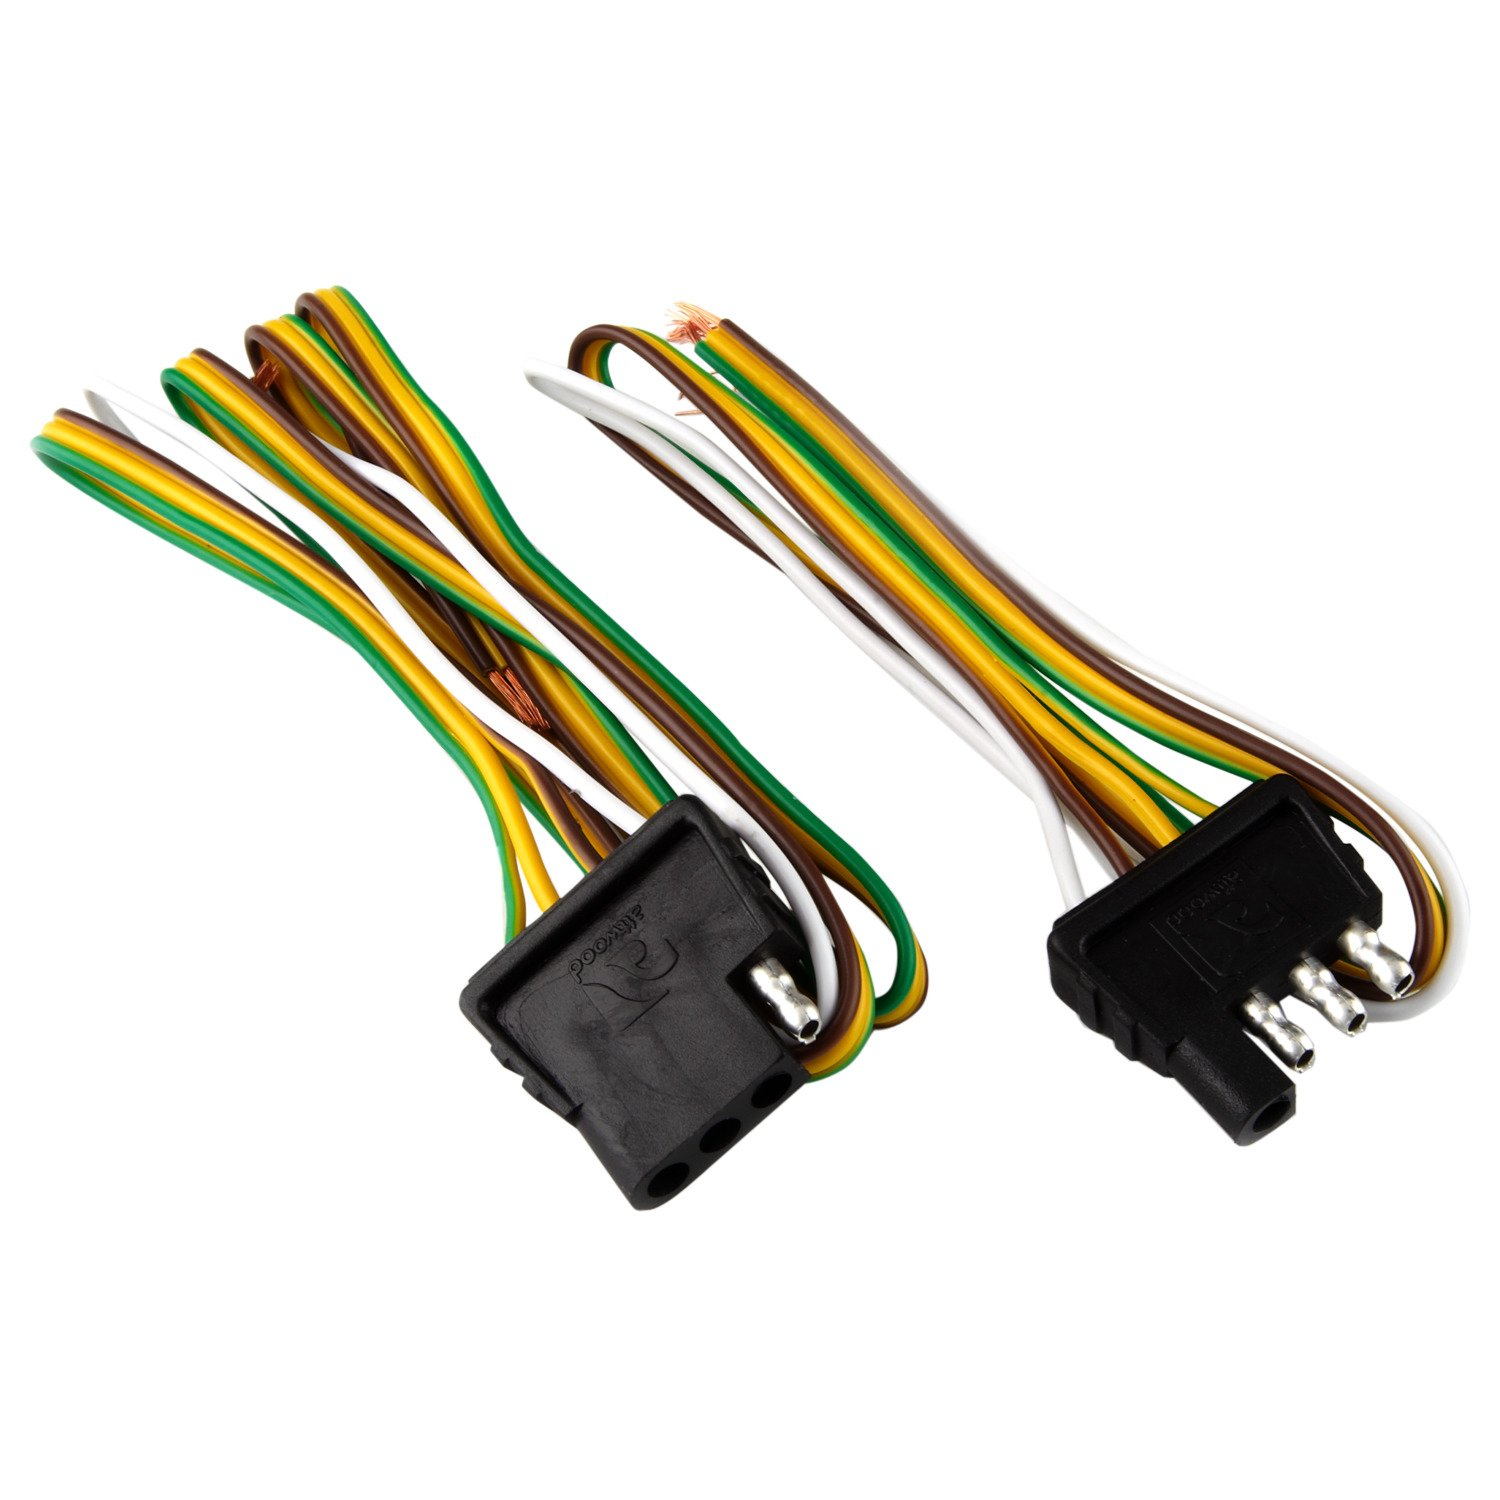 attwood 4 way flat wiring harness kit for vehicles and trailers 4 way flat trailer wiring harness [ 1500 x 1500 Pixel ]